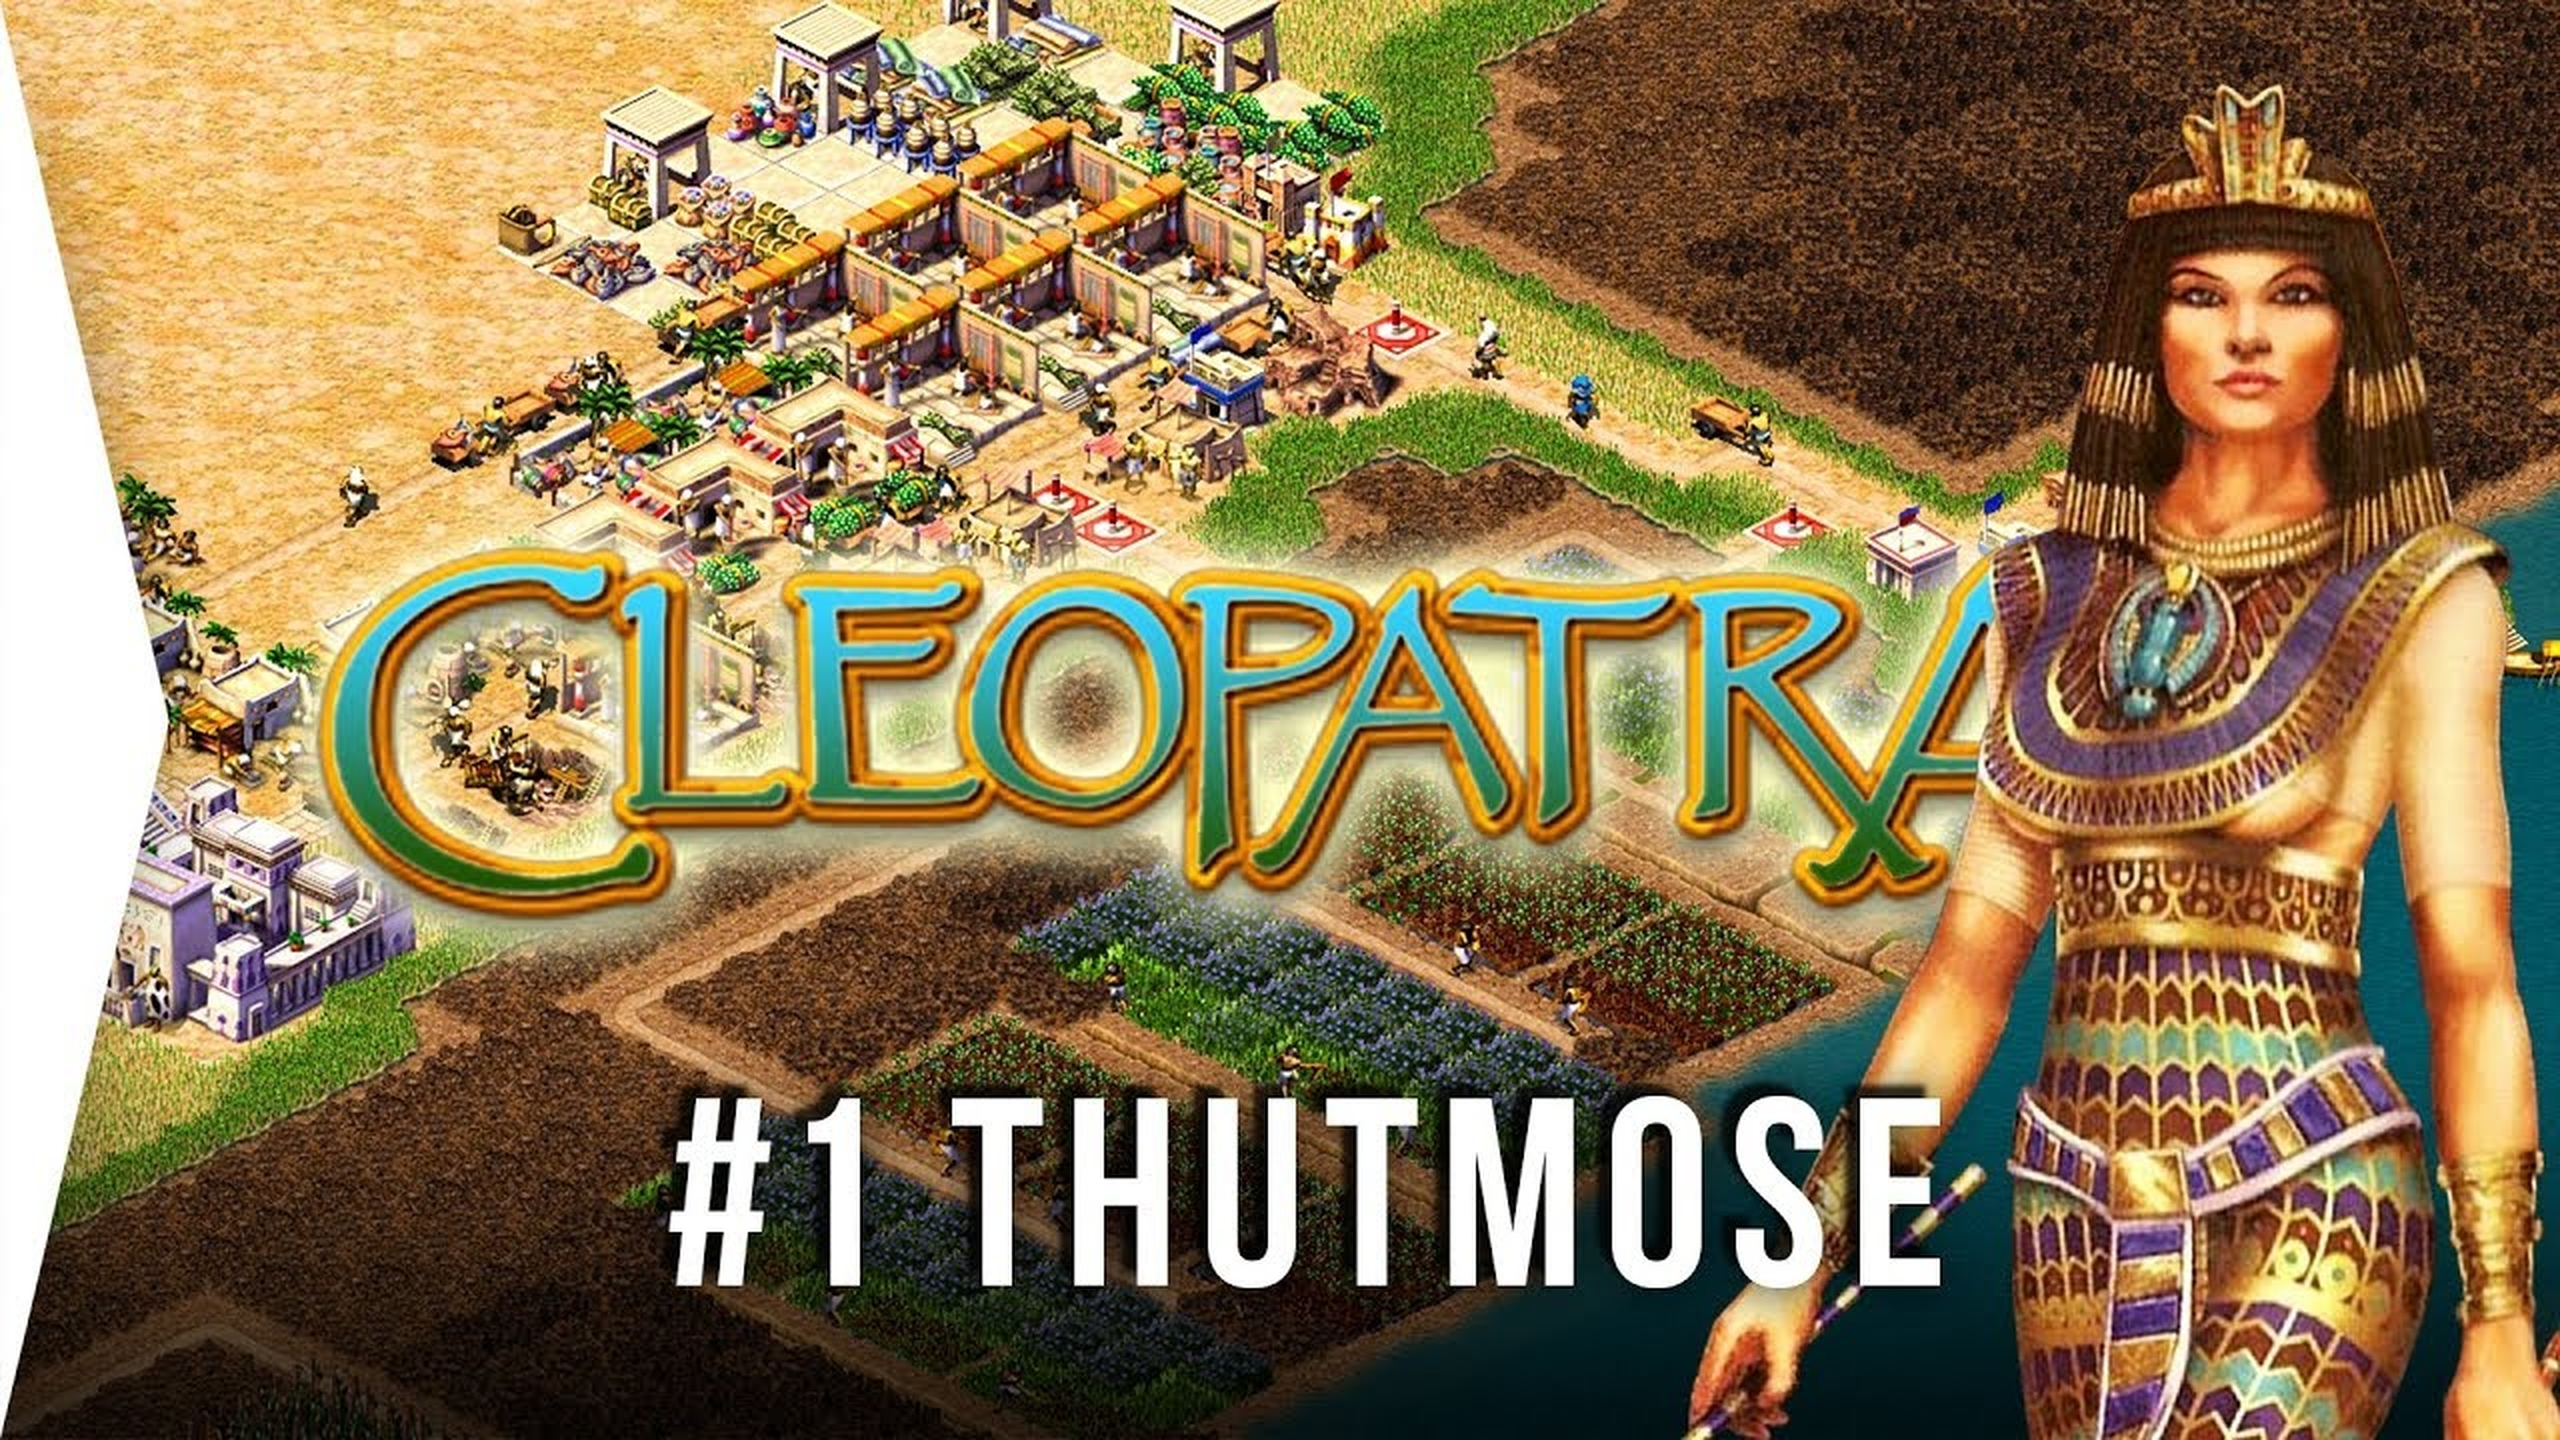 The Cleopatra (GamePlay) Online Slot Demo Game by Gameplay Interactive